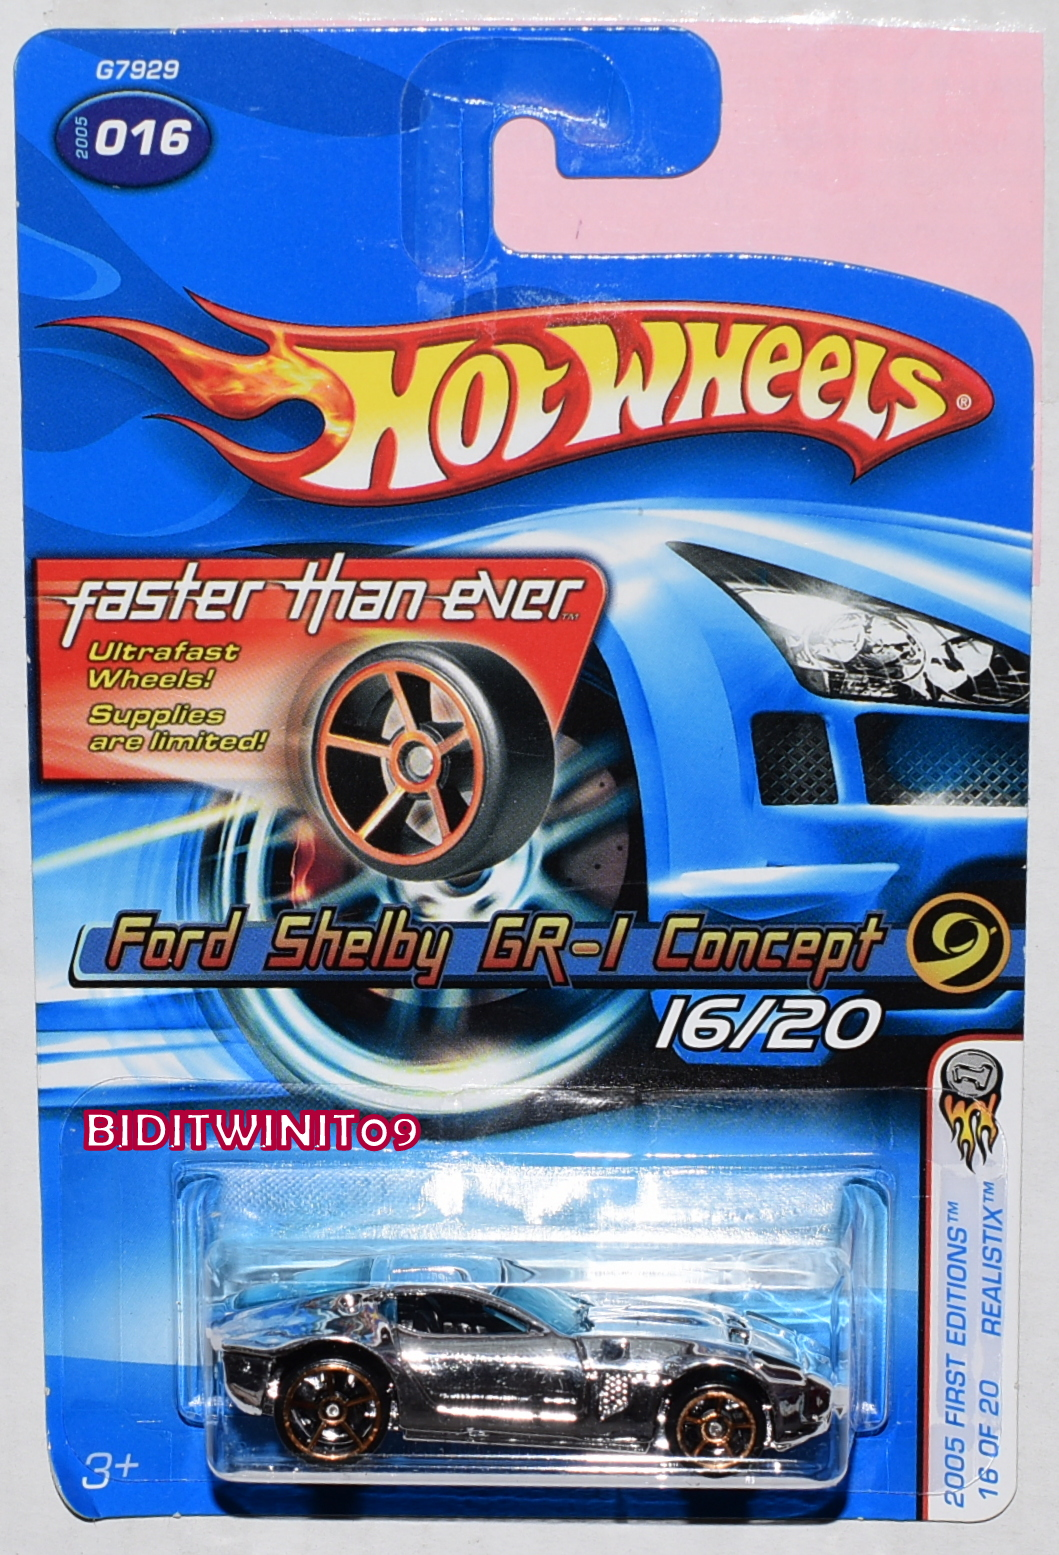 HOT WHEELS 2005 FIRST EDITIONS FTE FORD SHELBY GT-1 CONCEPT E+